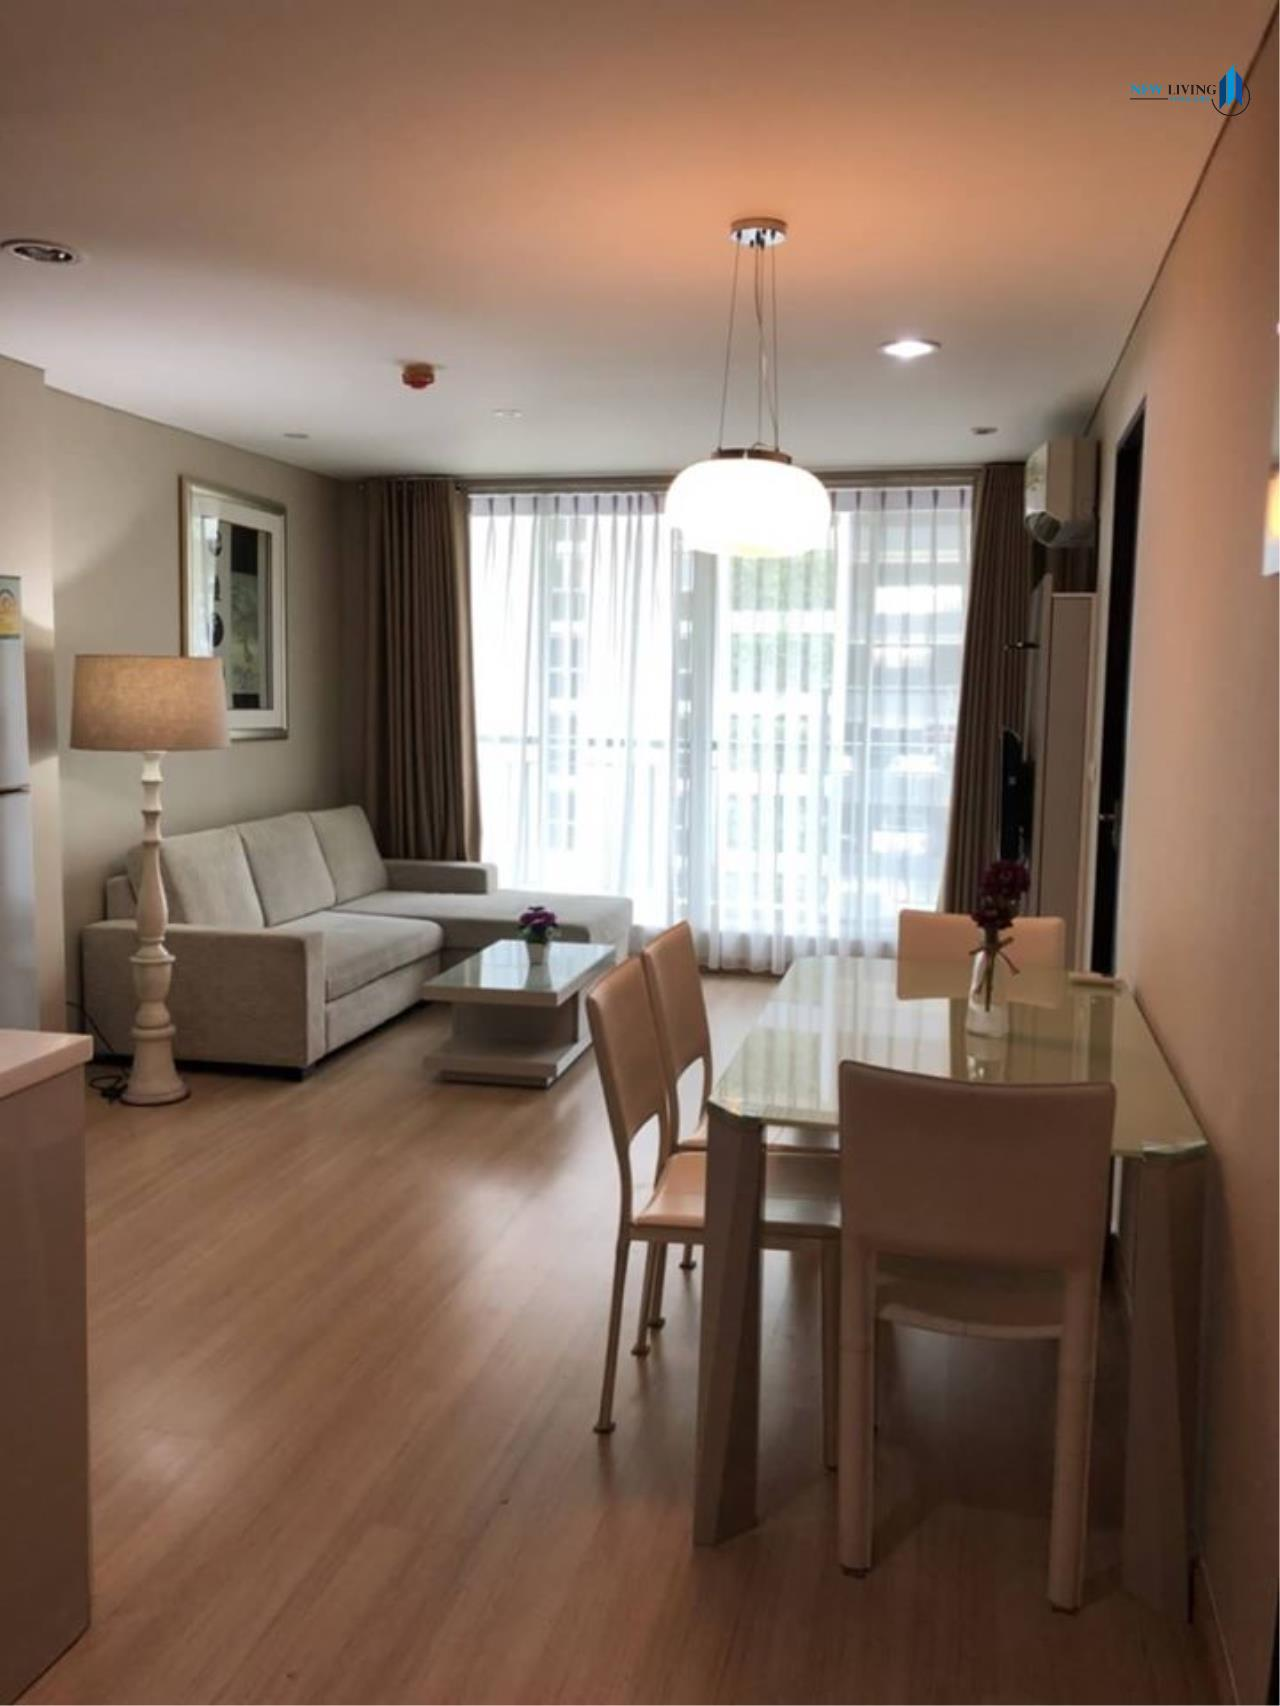 New Living Thailand Agency's For rent, The Address Pathumwan, near Ratchathewi BTS, 2 bedrooms, 60 sq.m., east, fully furnished 2